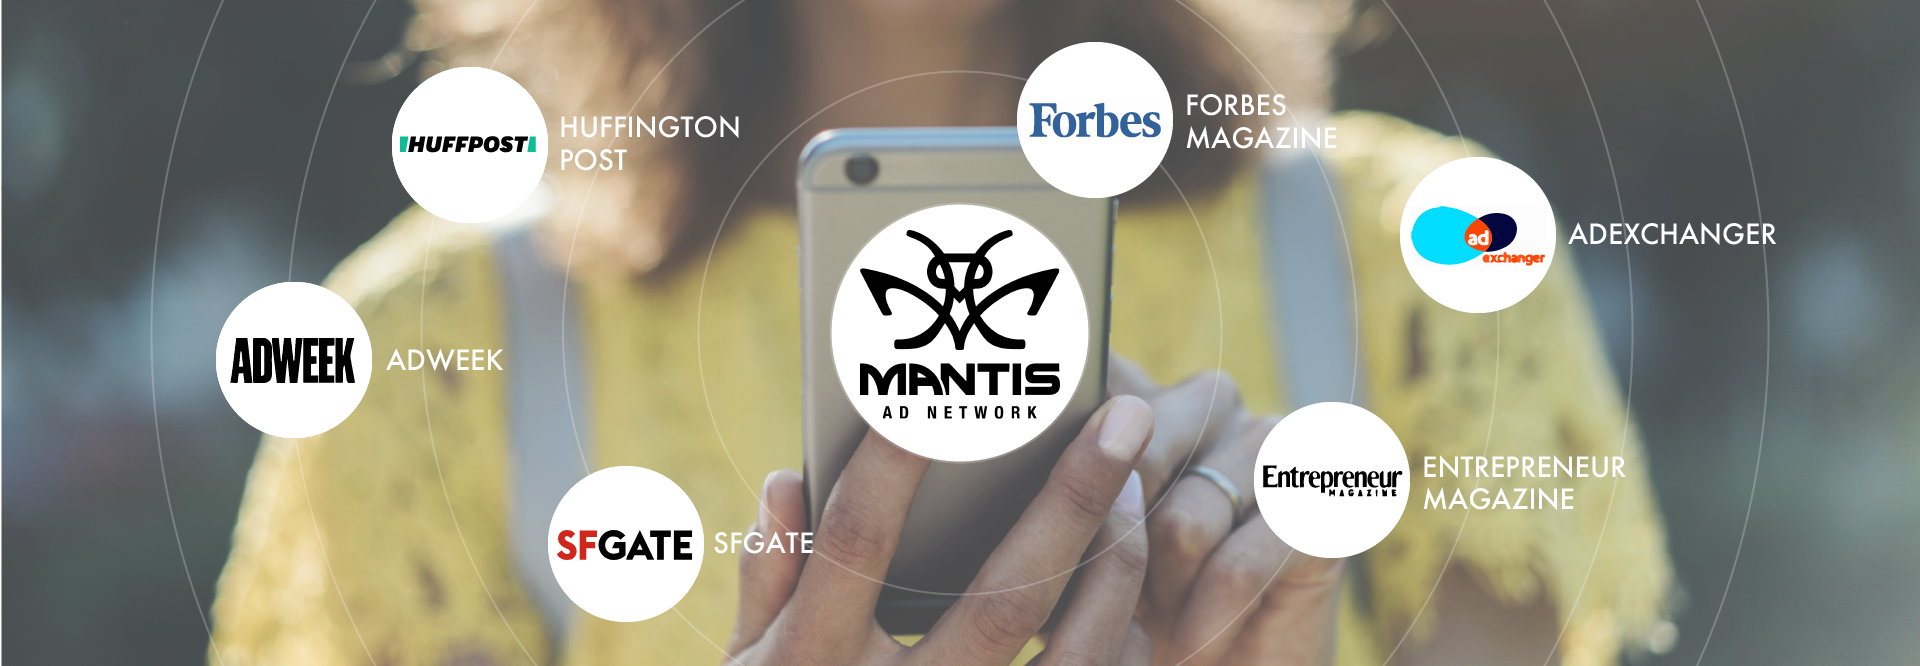 mantis-as-seen-in-adweek-sfgate-huffington-post-entrepreneur-magazine-forbes-and-adexchanger